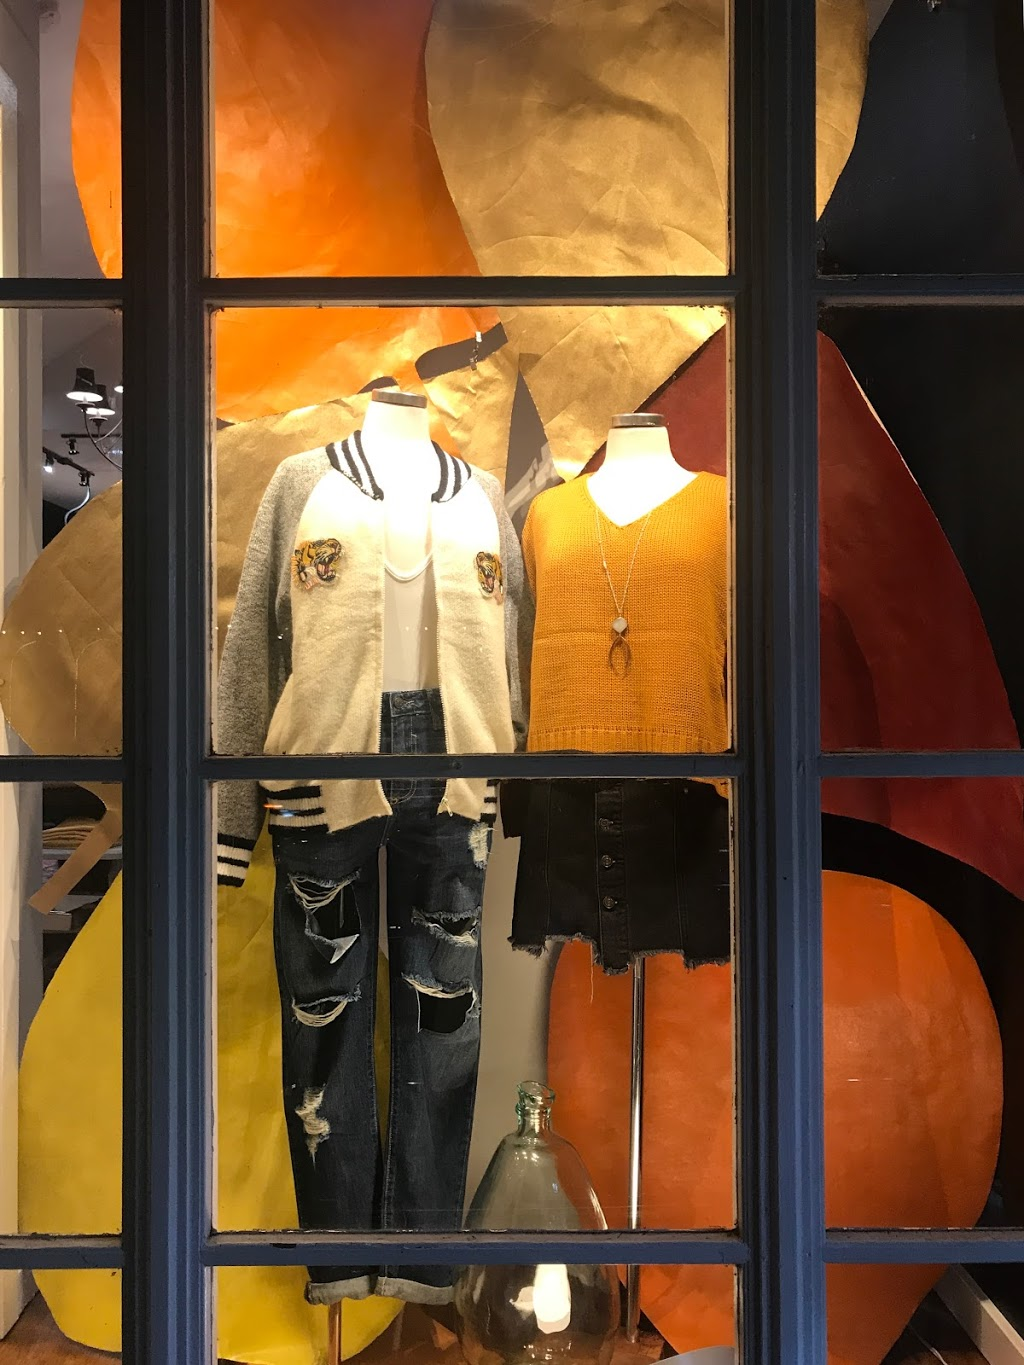 Alchemistry Boutique - clothing store  | Photo 6 of 10 | Address: 124 S Main St, New Hope, PA 18938, USA | Phone: (215) 693-1856